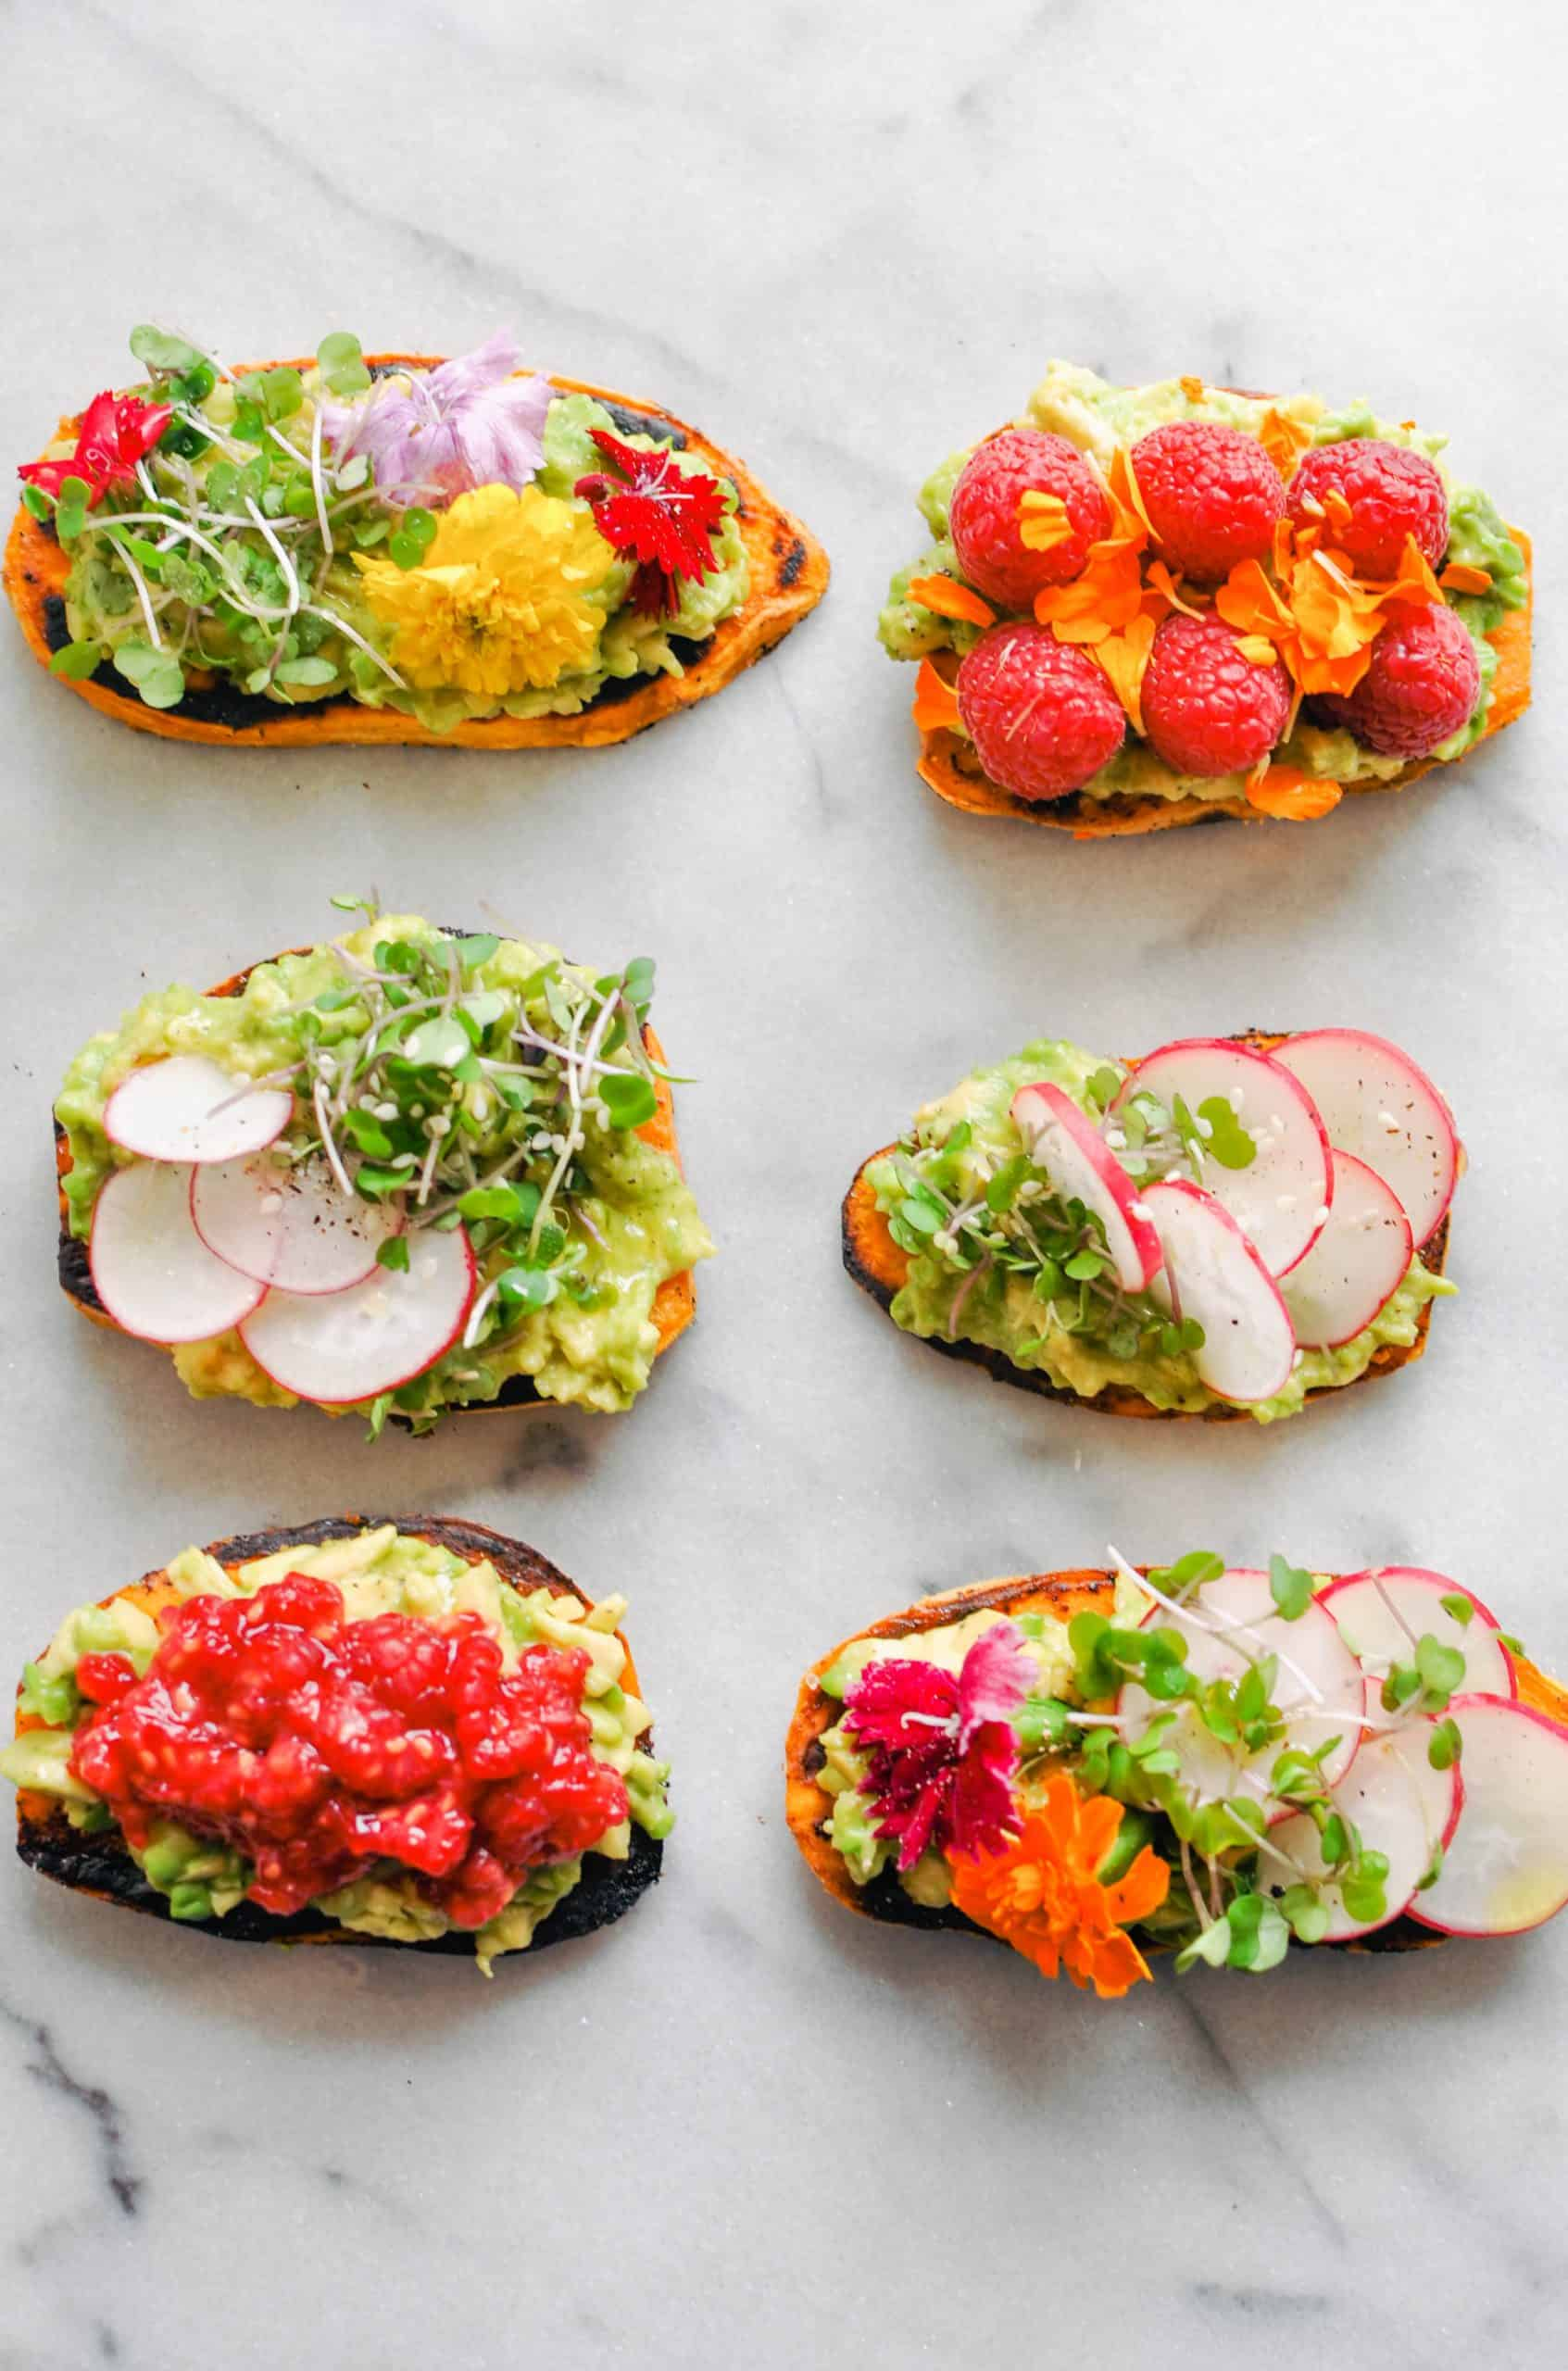 sweet potato toasts with avocado and fruit